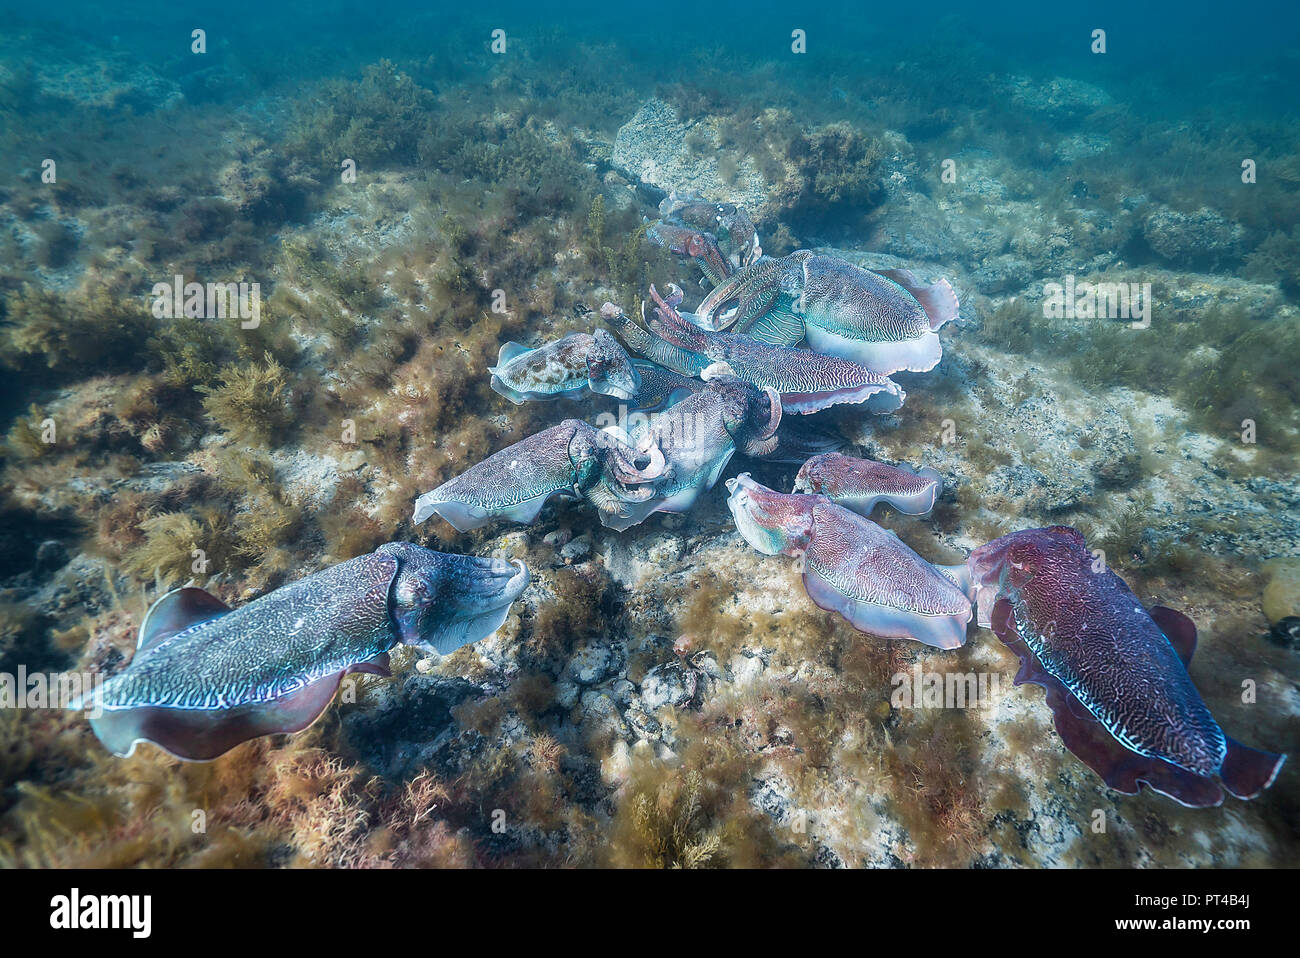 Male Australian giant cuttlefish protecting his female as she tries to lay her eggs, during the annual mating and migration season. - Stock Image